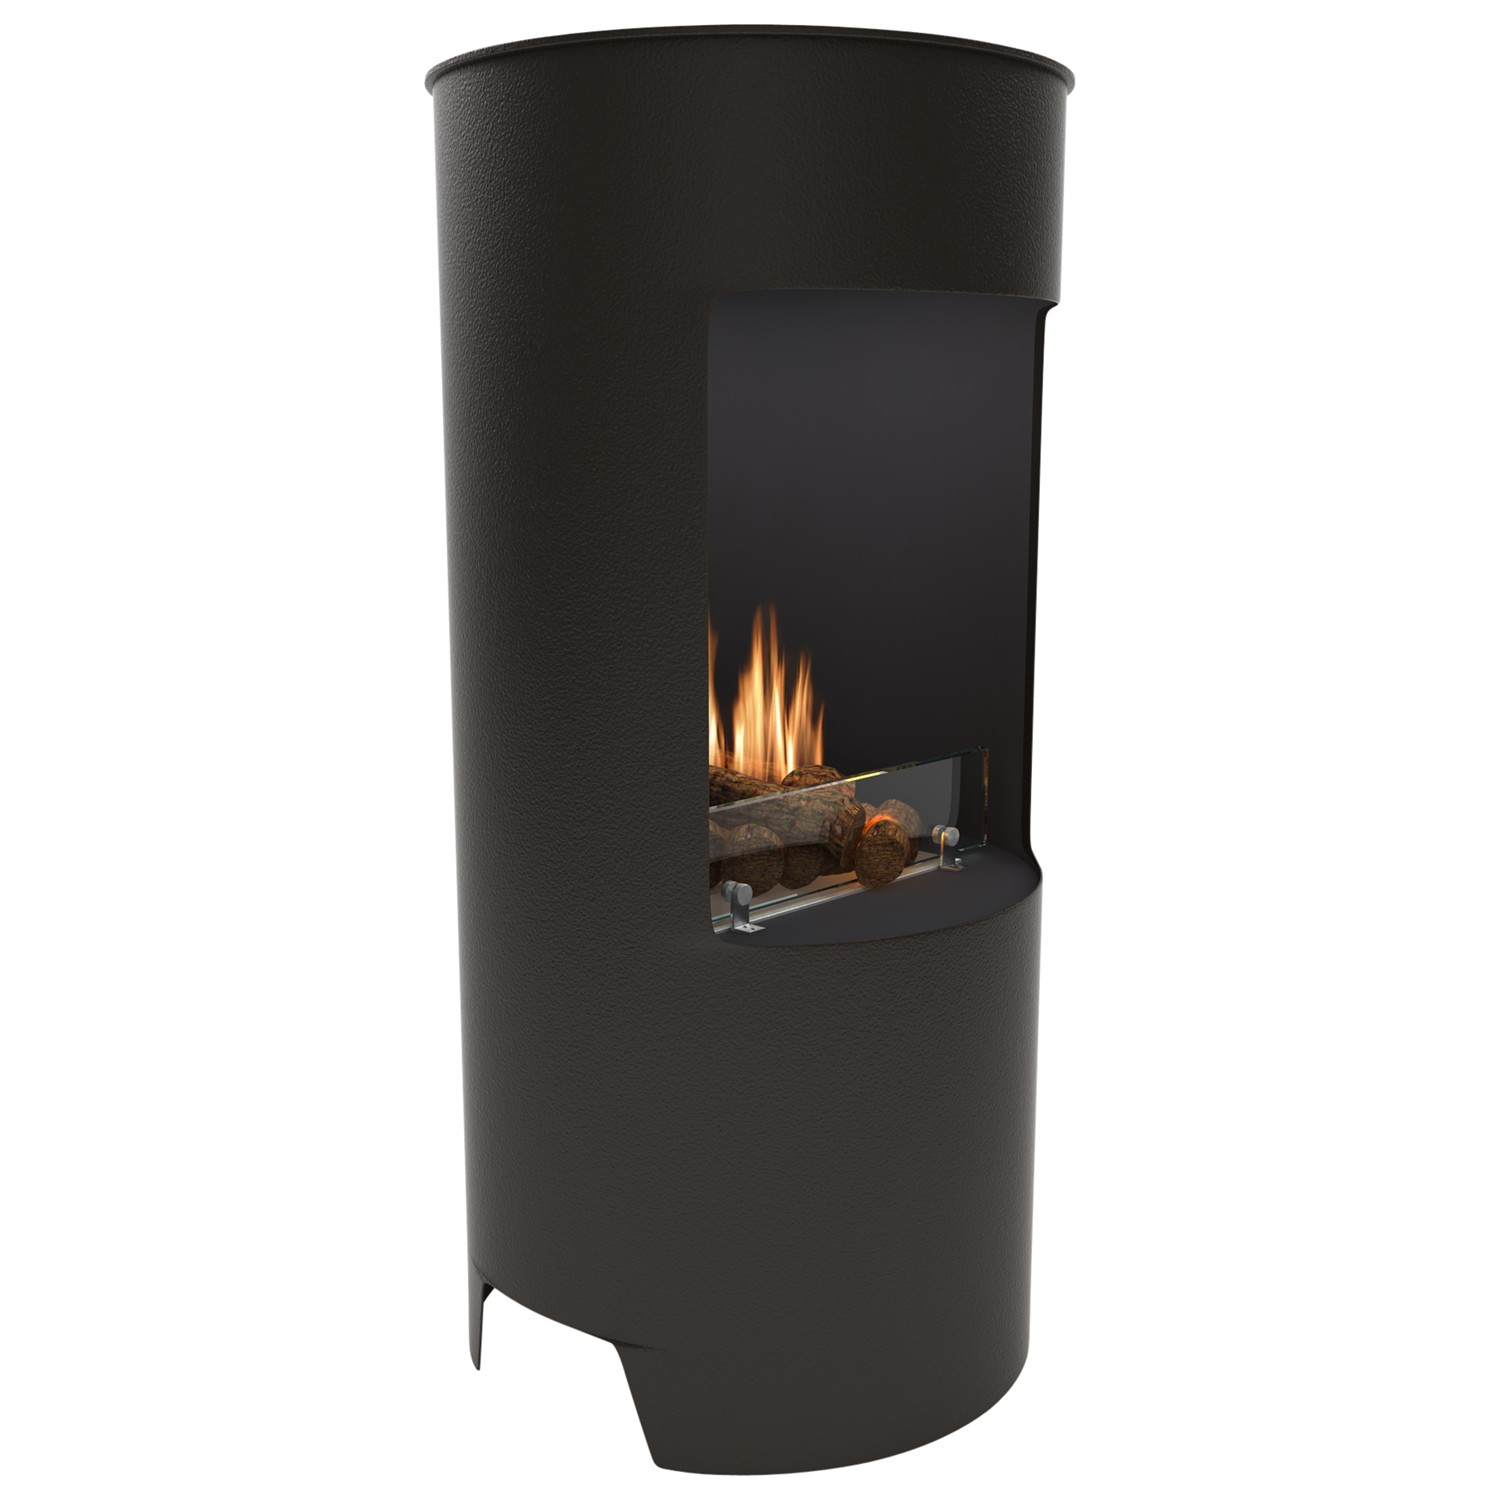 imagin stow bioethanol fireplace black review best buy review. Black Bedroom Furniture Sets. Home Design Ideas